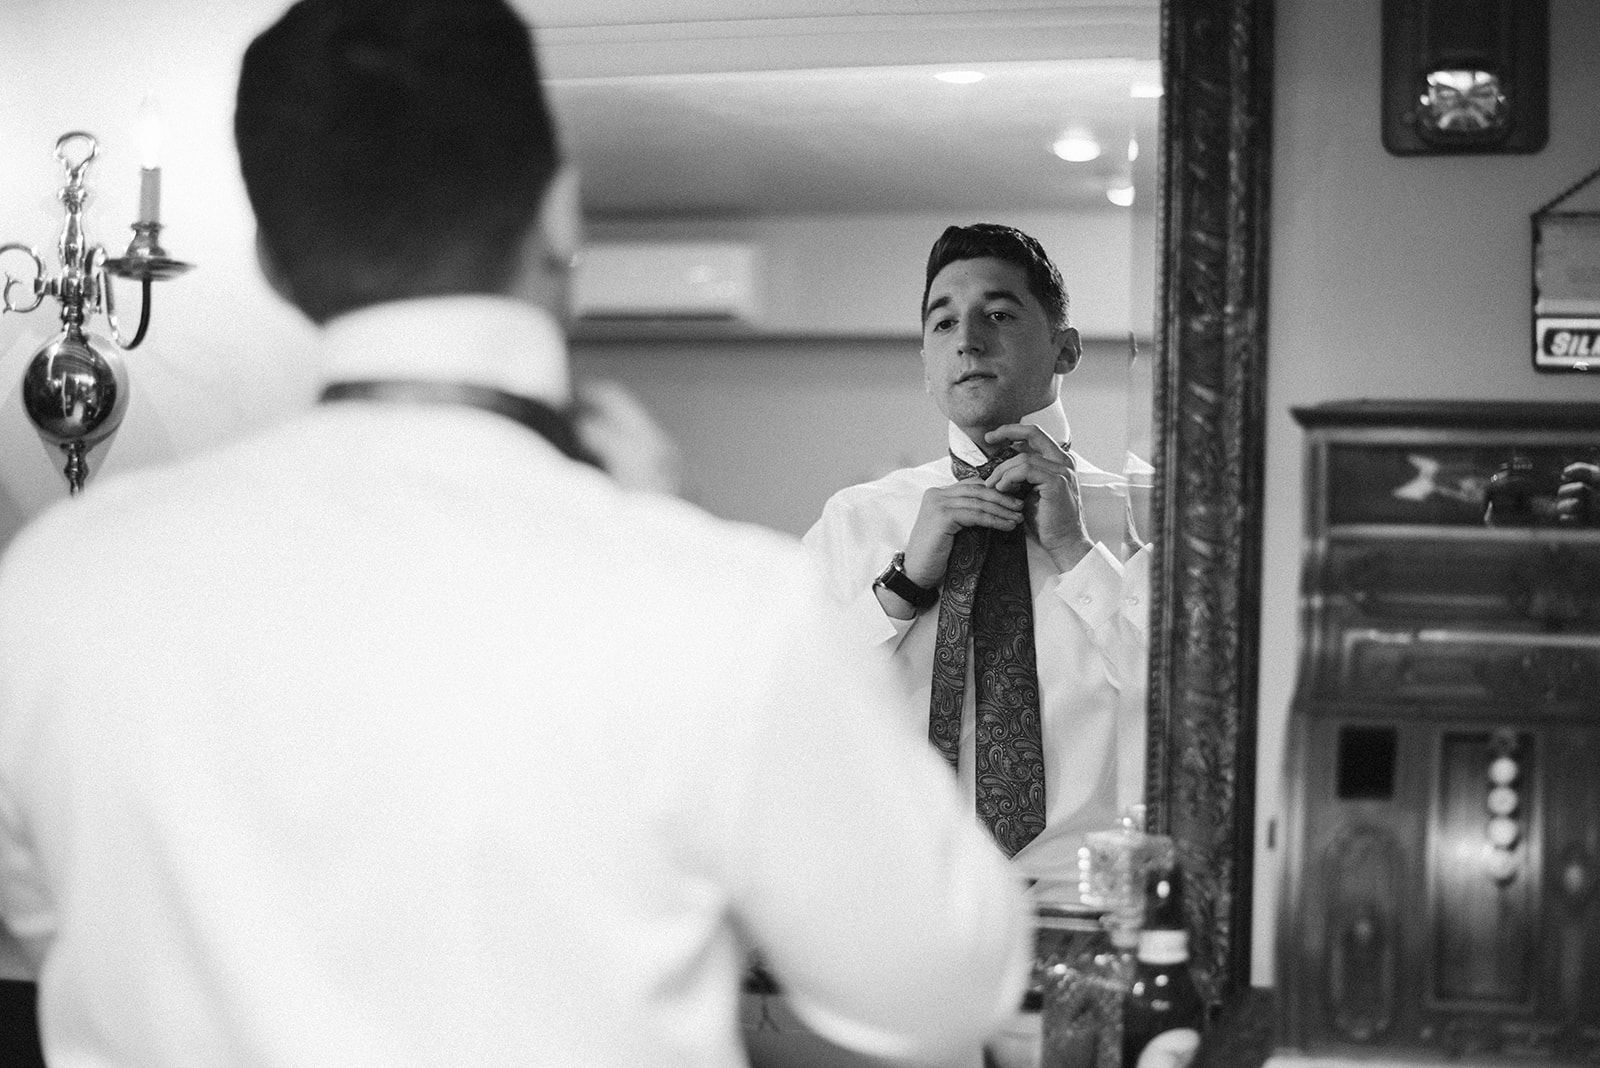 The groom is getting ready in the groom's suite at Drumore Estate prior to his wedding ceremony.